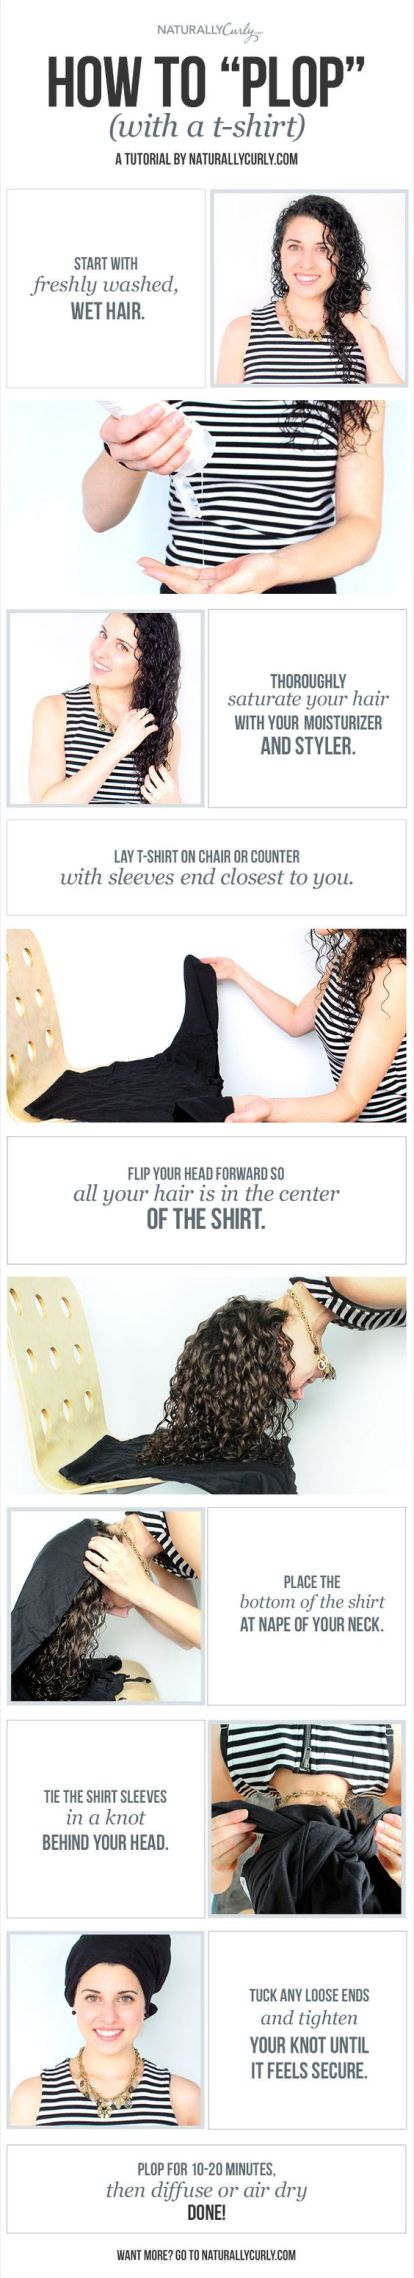 Drying your hair with a tshirt instead of a towel are life saving hair care tips!